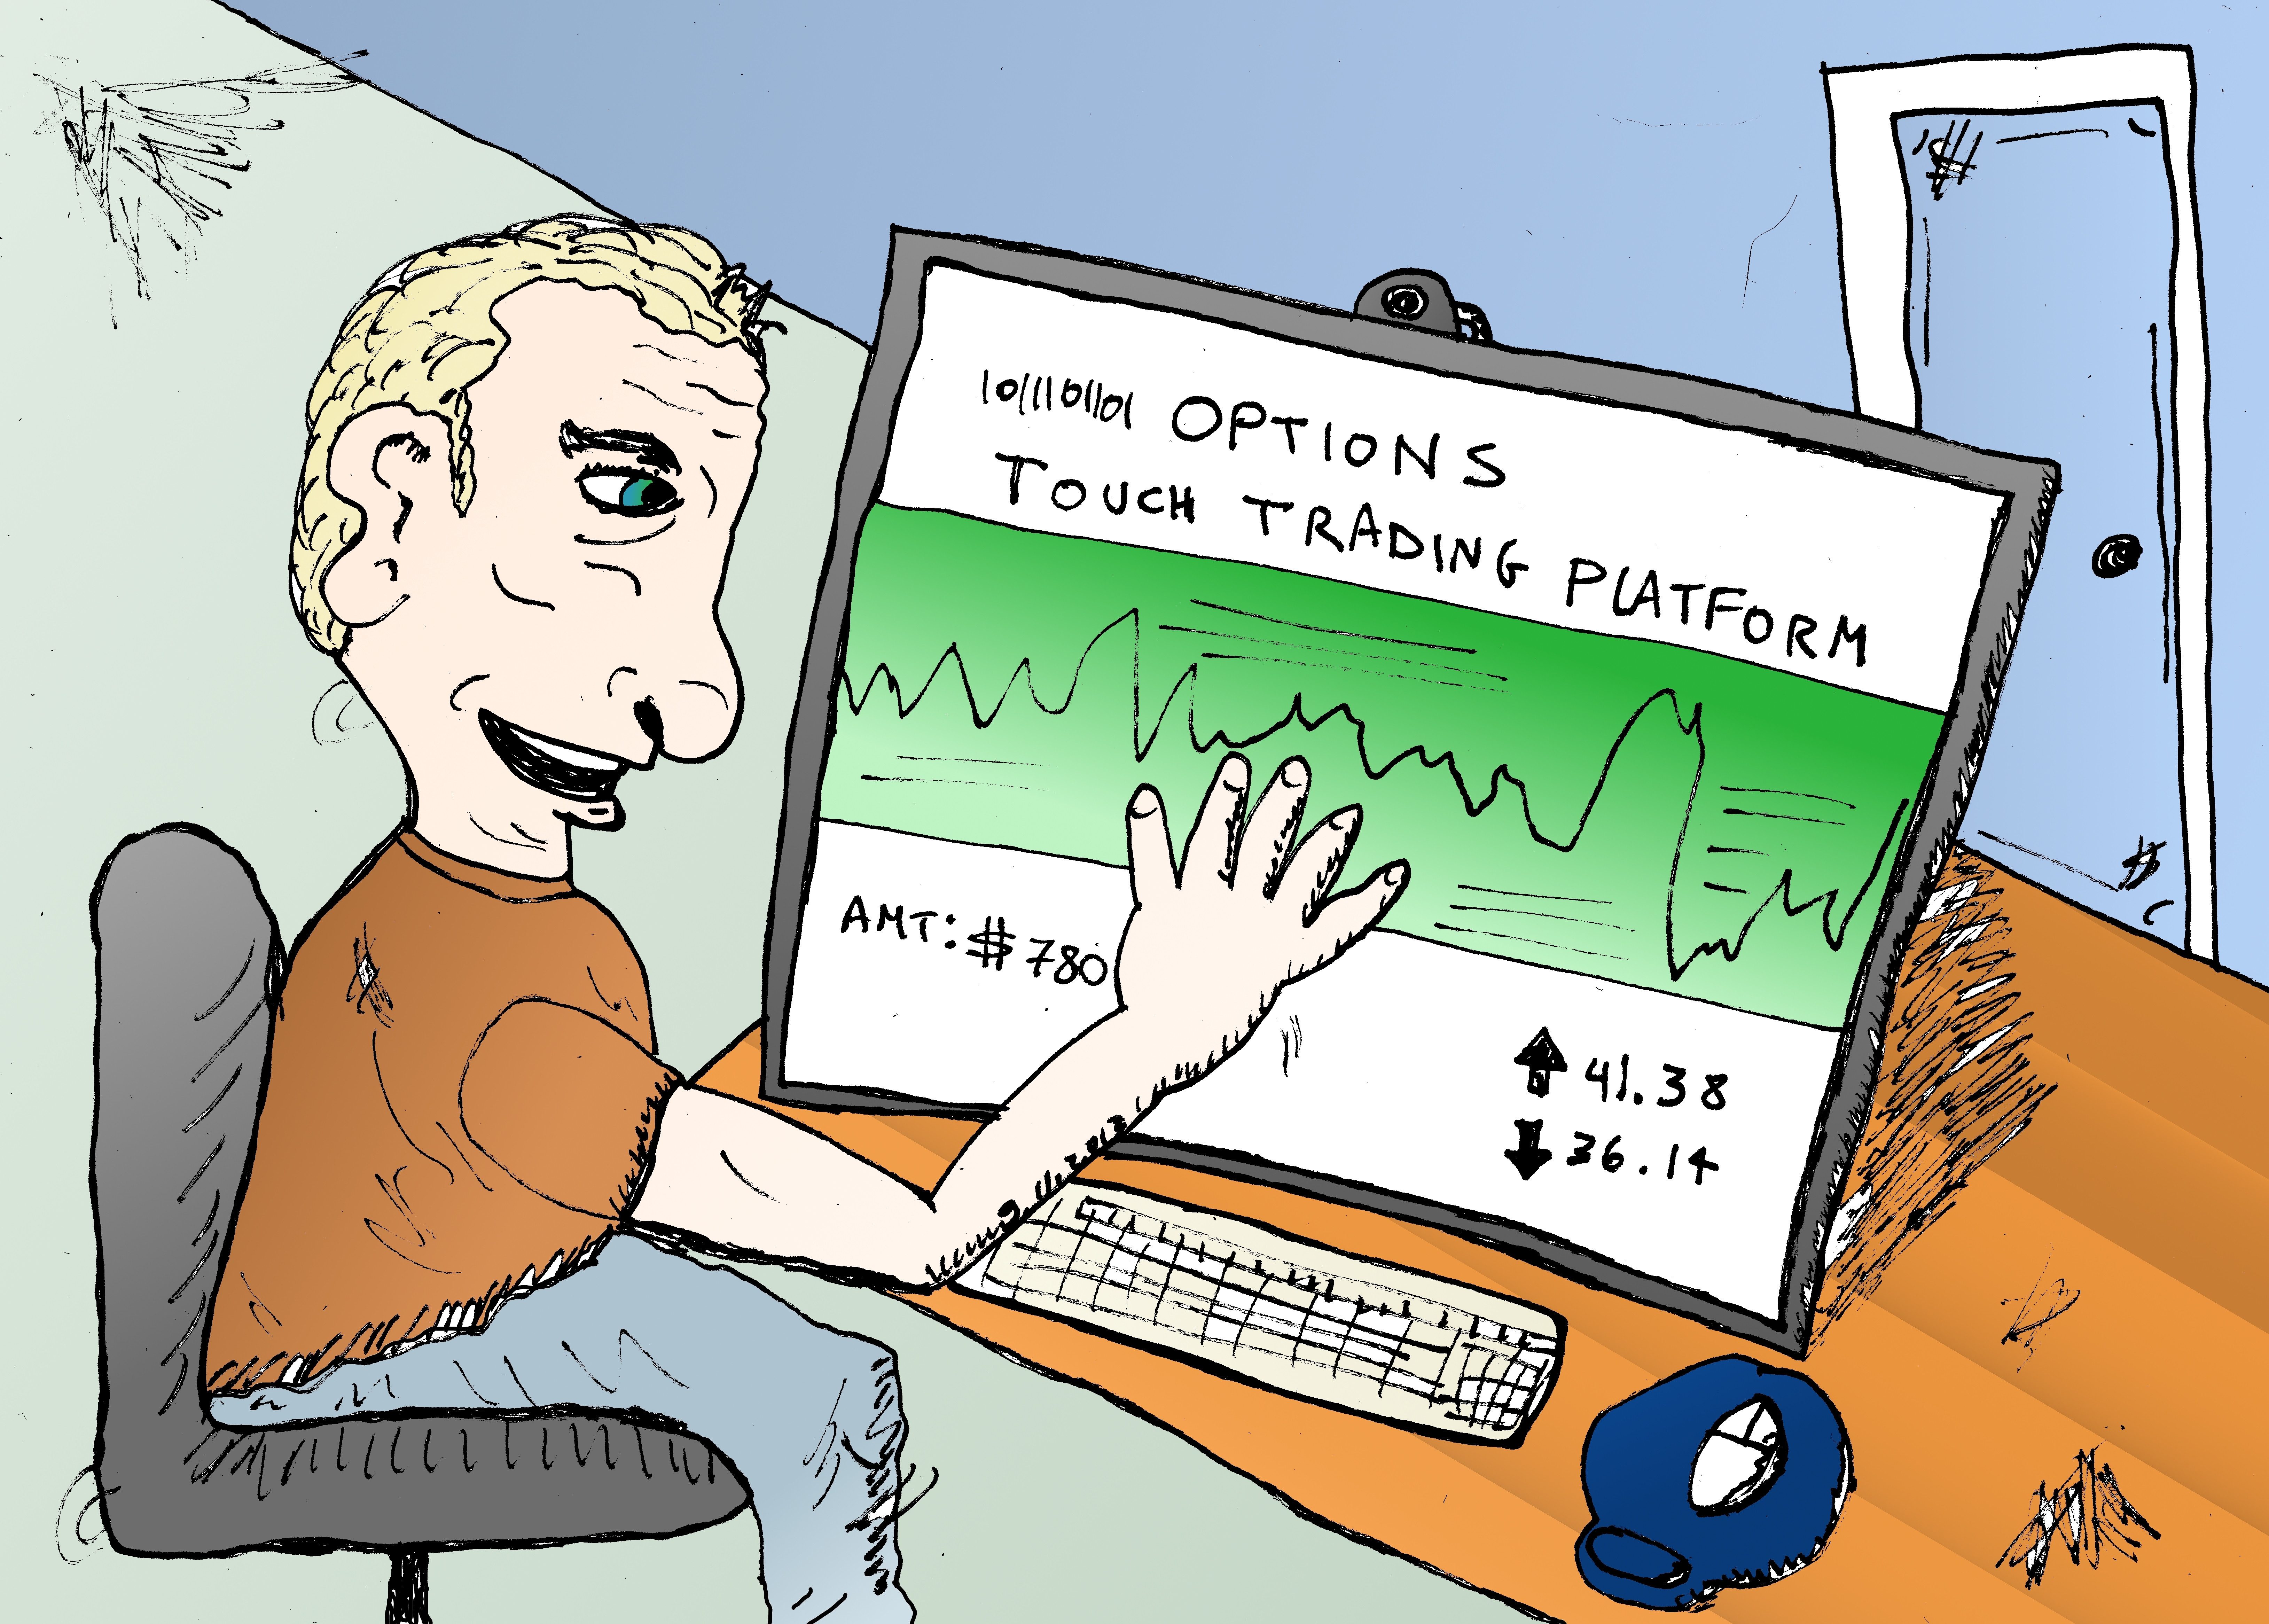 binary-options-touch-trading-platform-cartoon-illustration